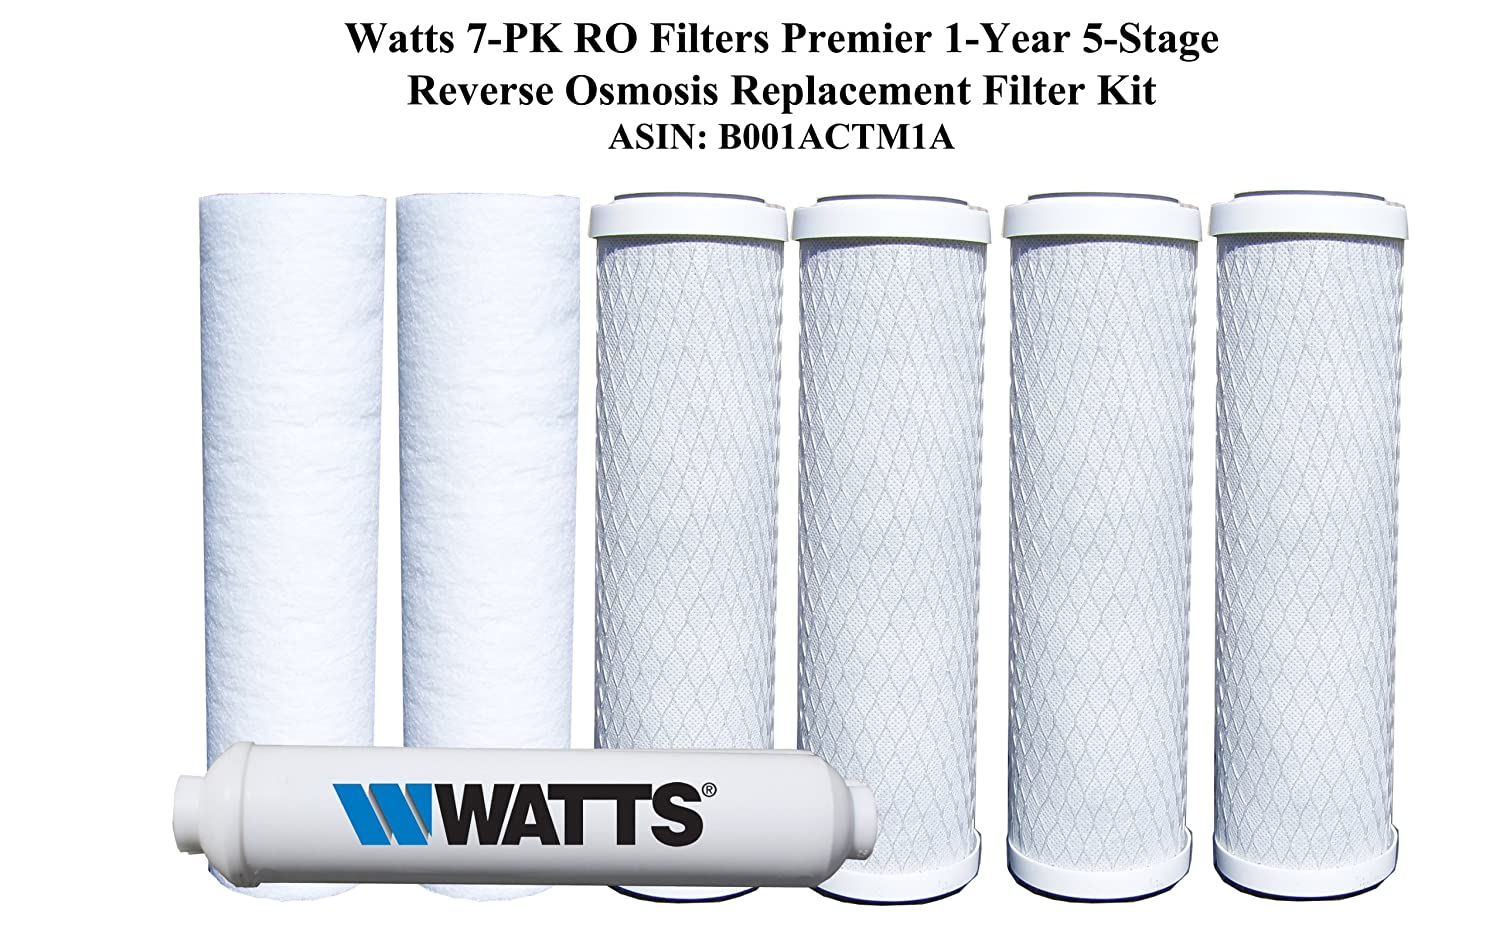 How To Change Reverse Osmosis Filters Watts Wp5 50 Premier Five Stage Manifold Reverse Osmosis Water